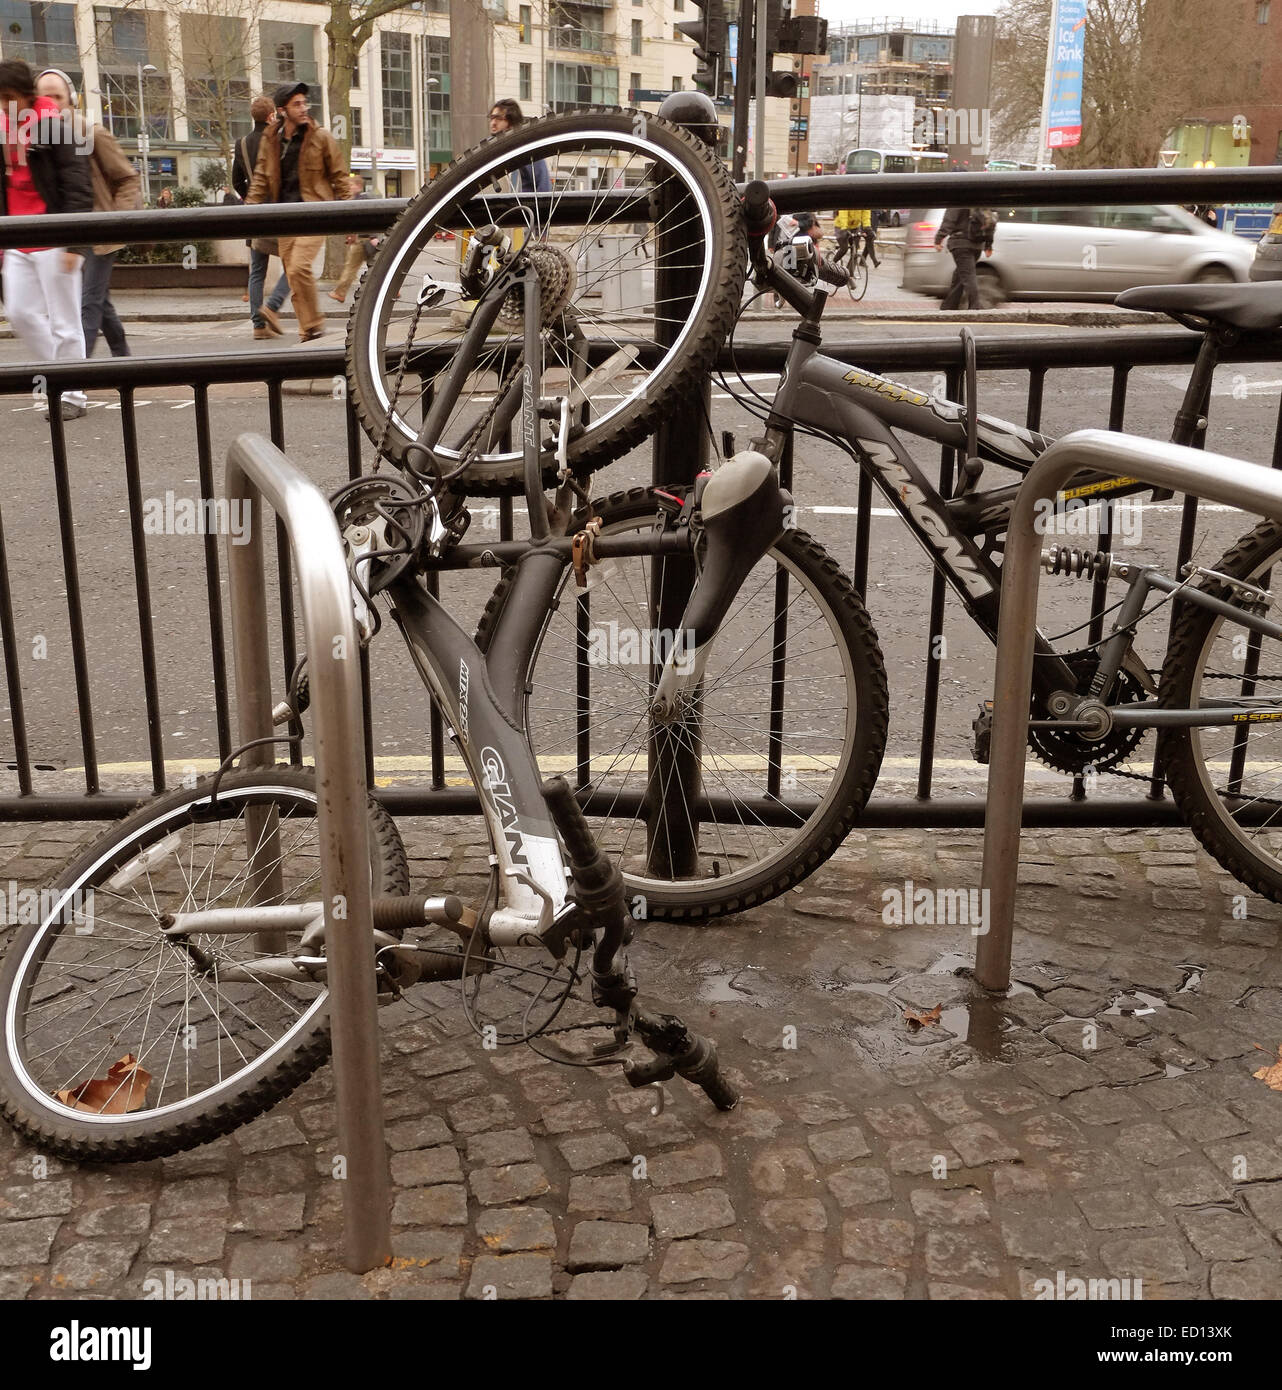 Badly parked bike in the centre of Bristol, locked secure 23rd December 2014 - Stock Image